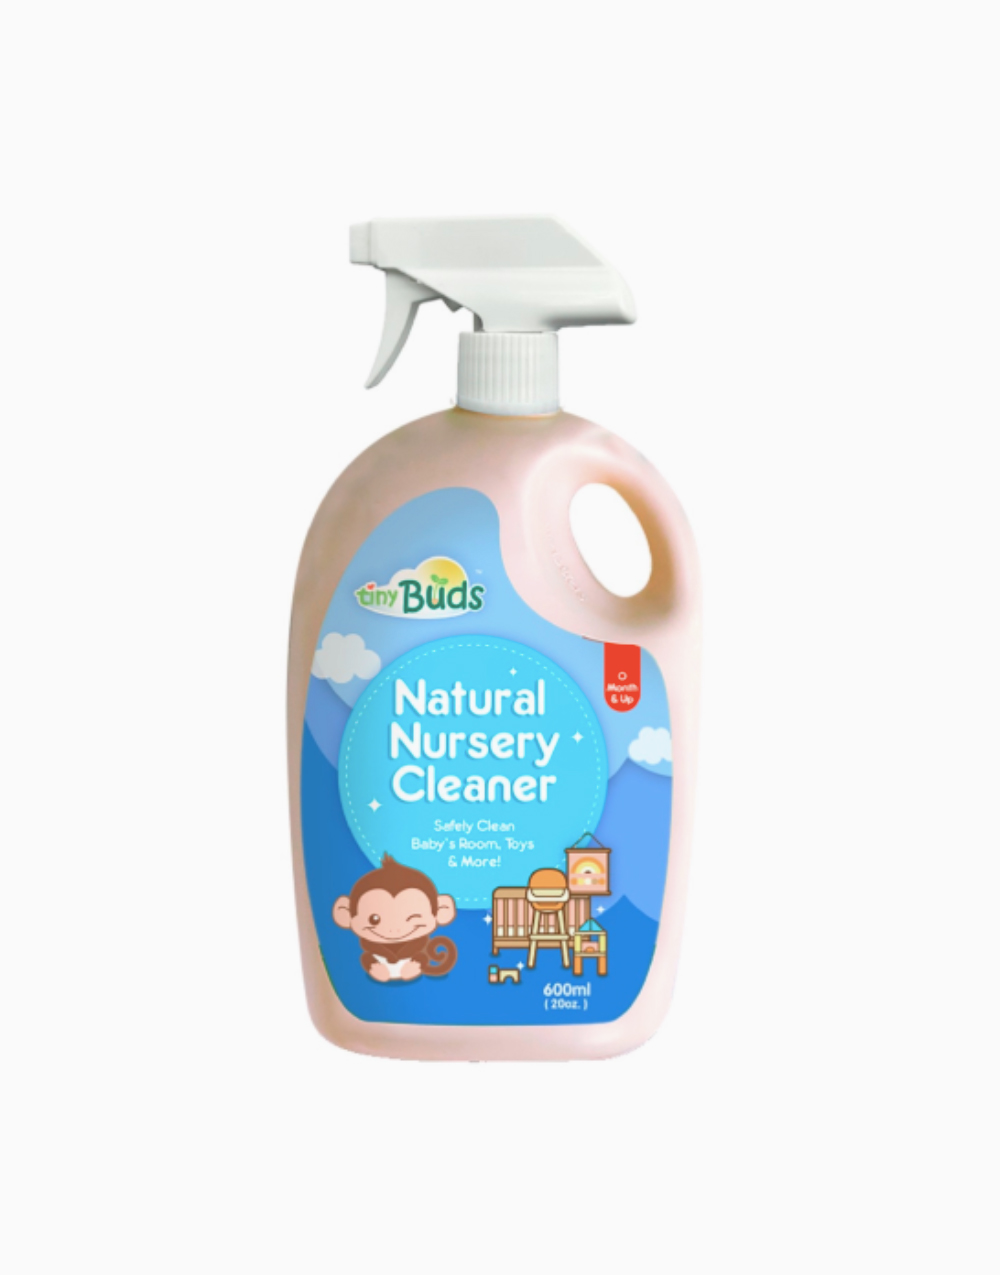 Natural Surface Cleaner Spray Bottle (600ml) by Tiny Buds